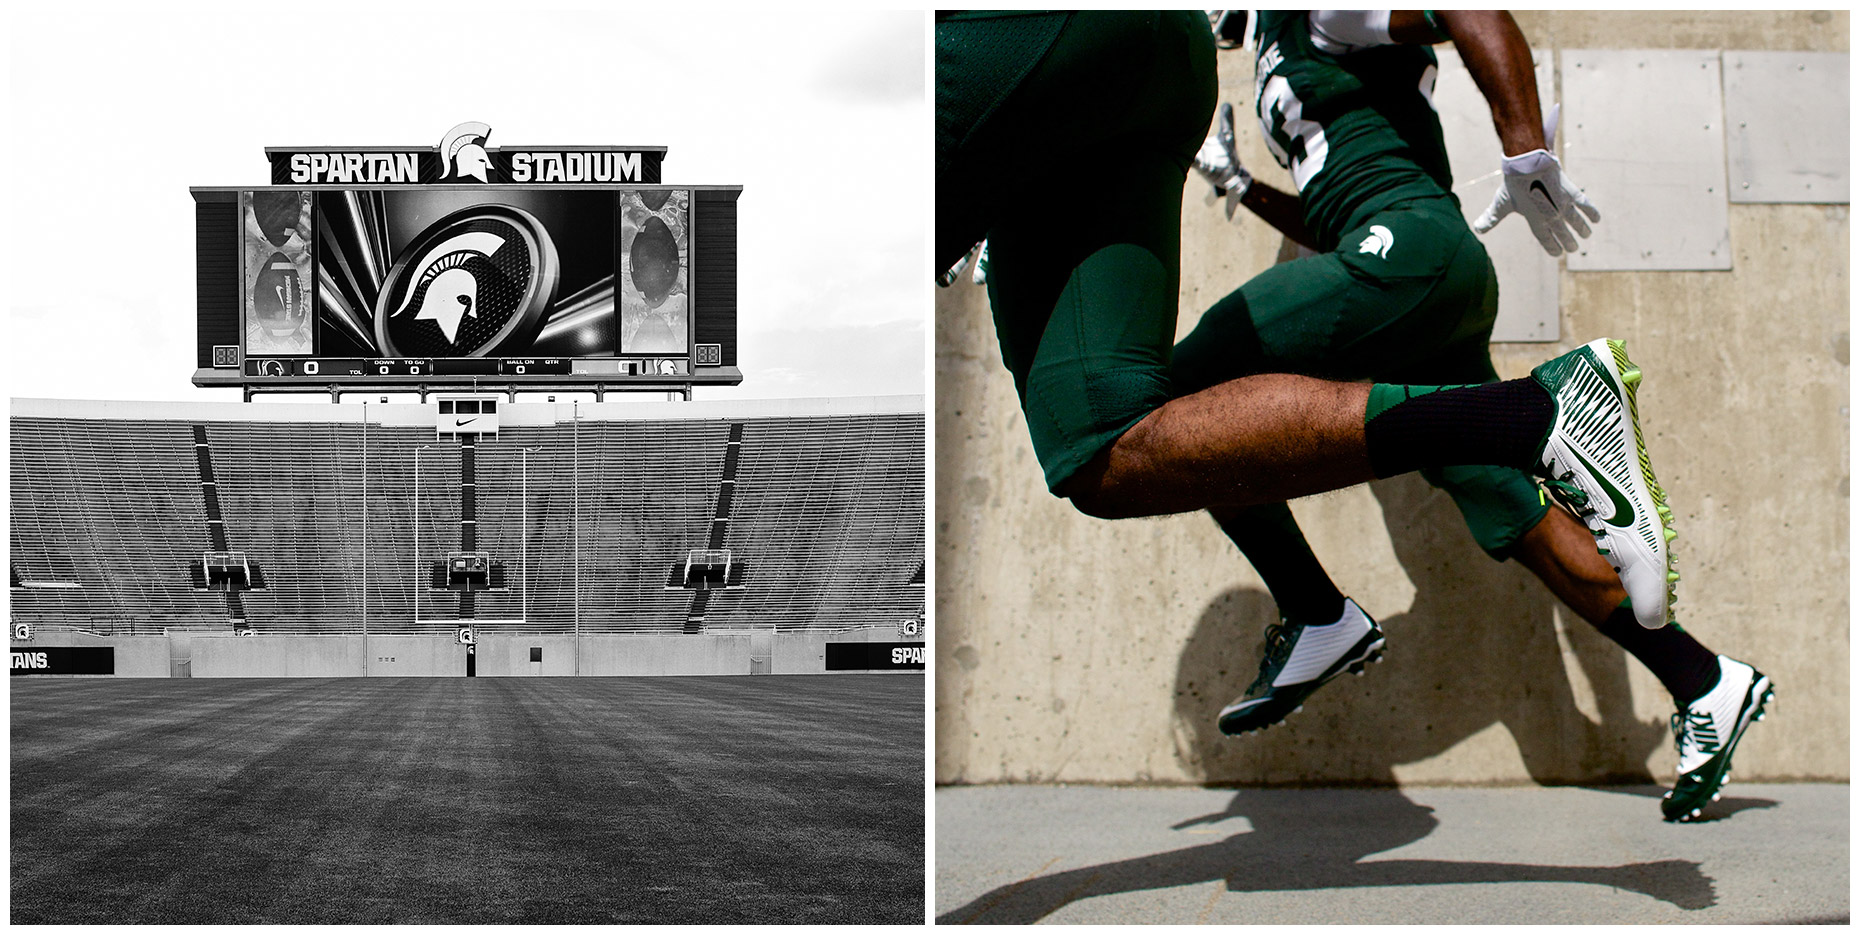 Michigan State Spartans | Project for Nike Digital